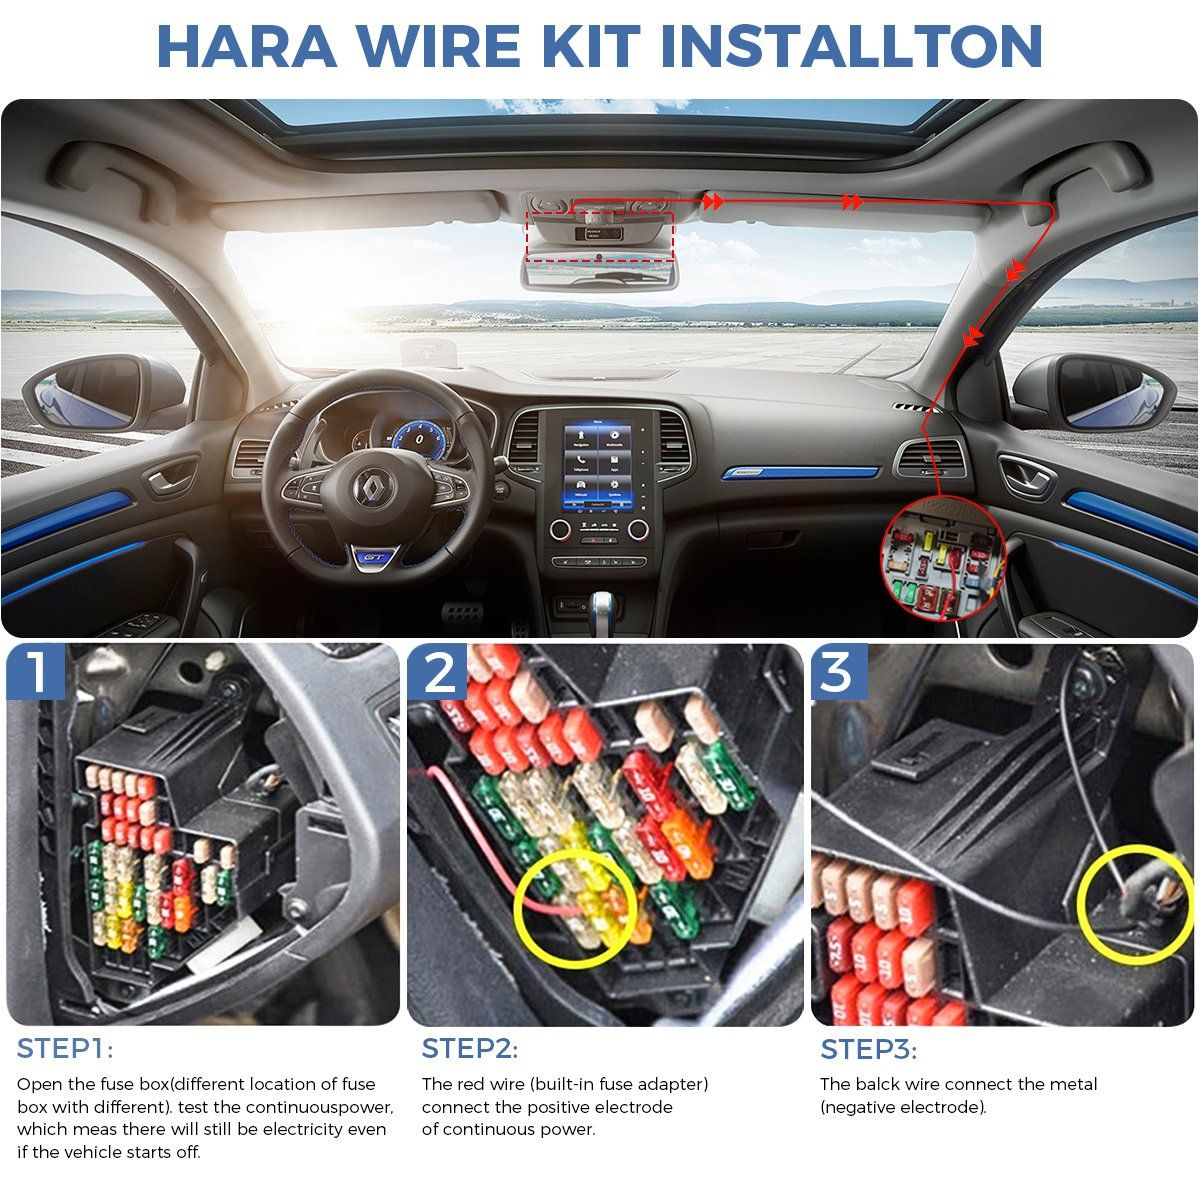 dash cam hardwire kit mini usb hard wire car charger cable kit 12v to 5v for [ 1200 x 1200 Pixel ]